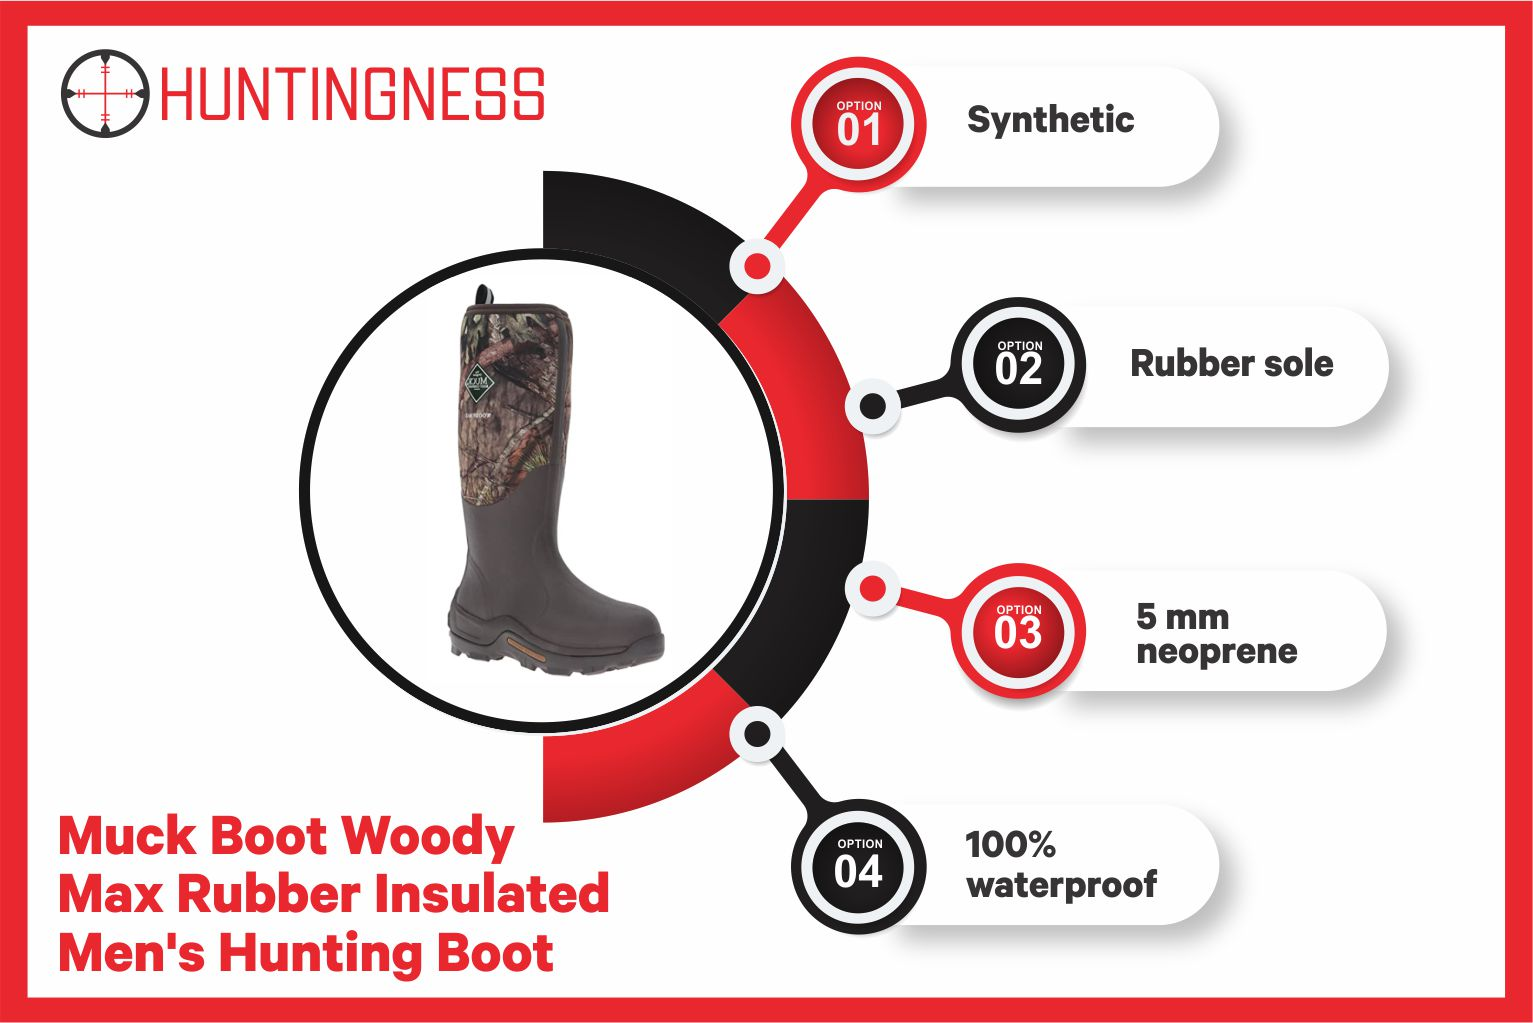 Muck-Boot-Woody-Max-Rubber-Insulated-Mens-Hunting-Boots-infographics